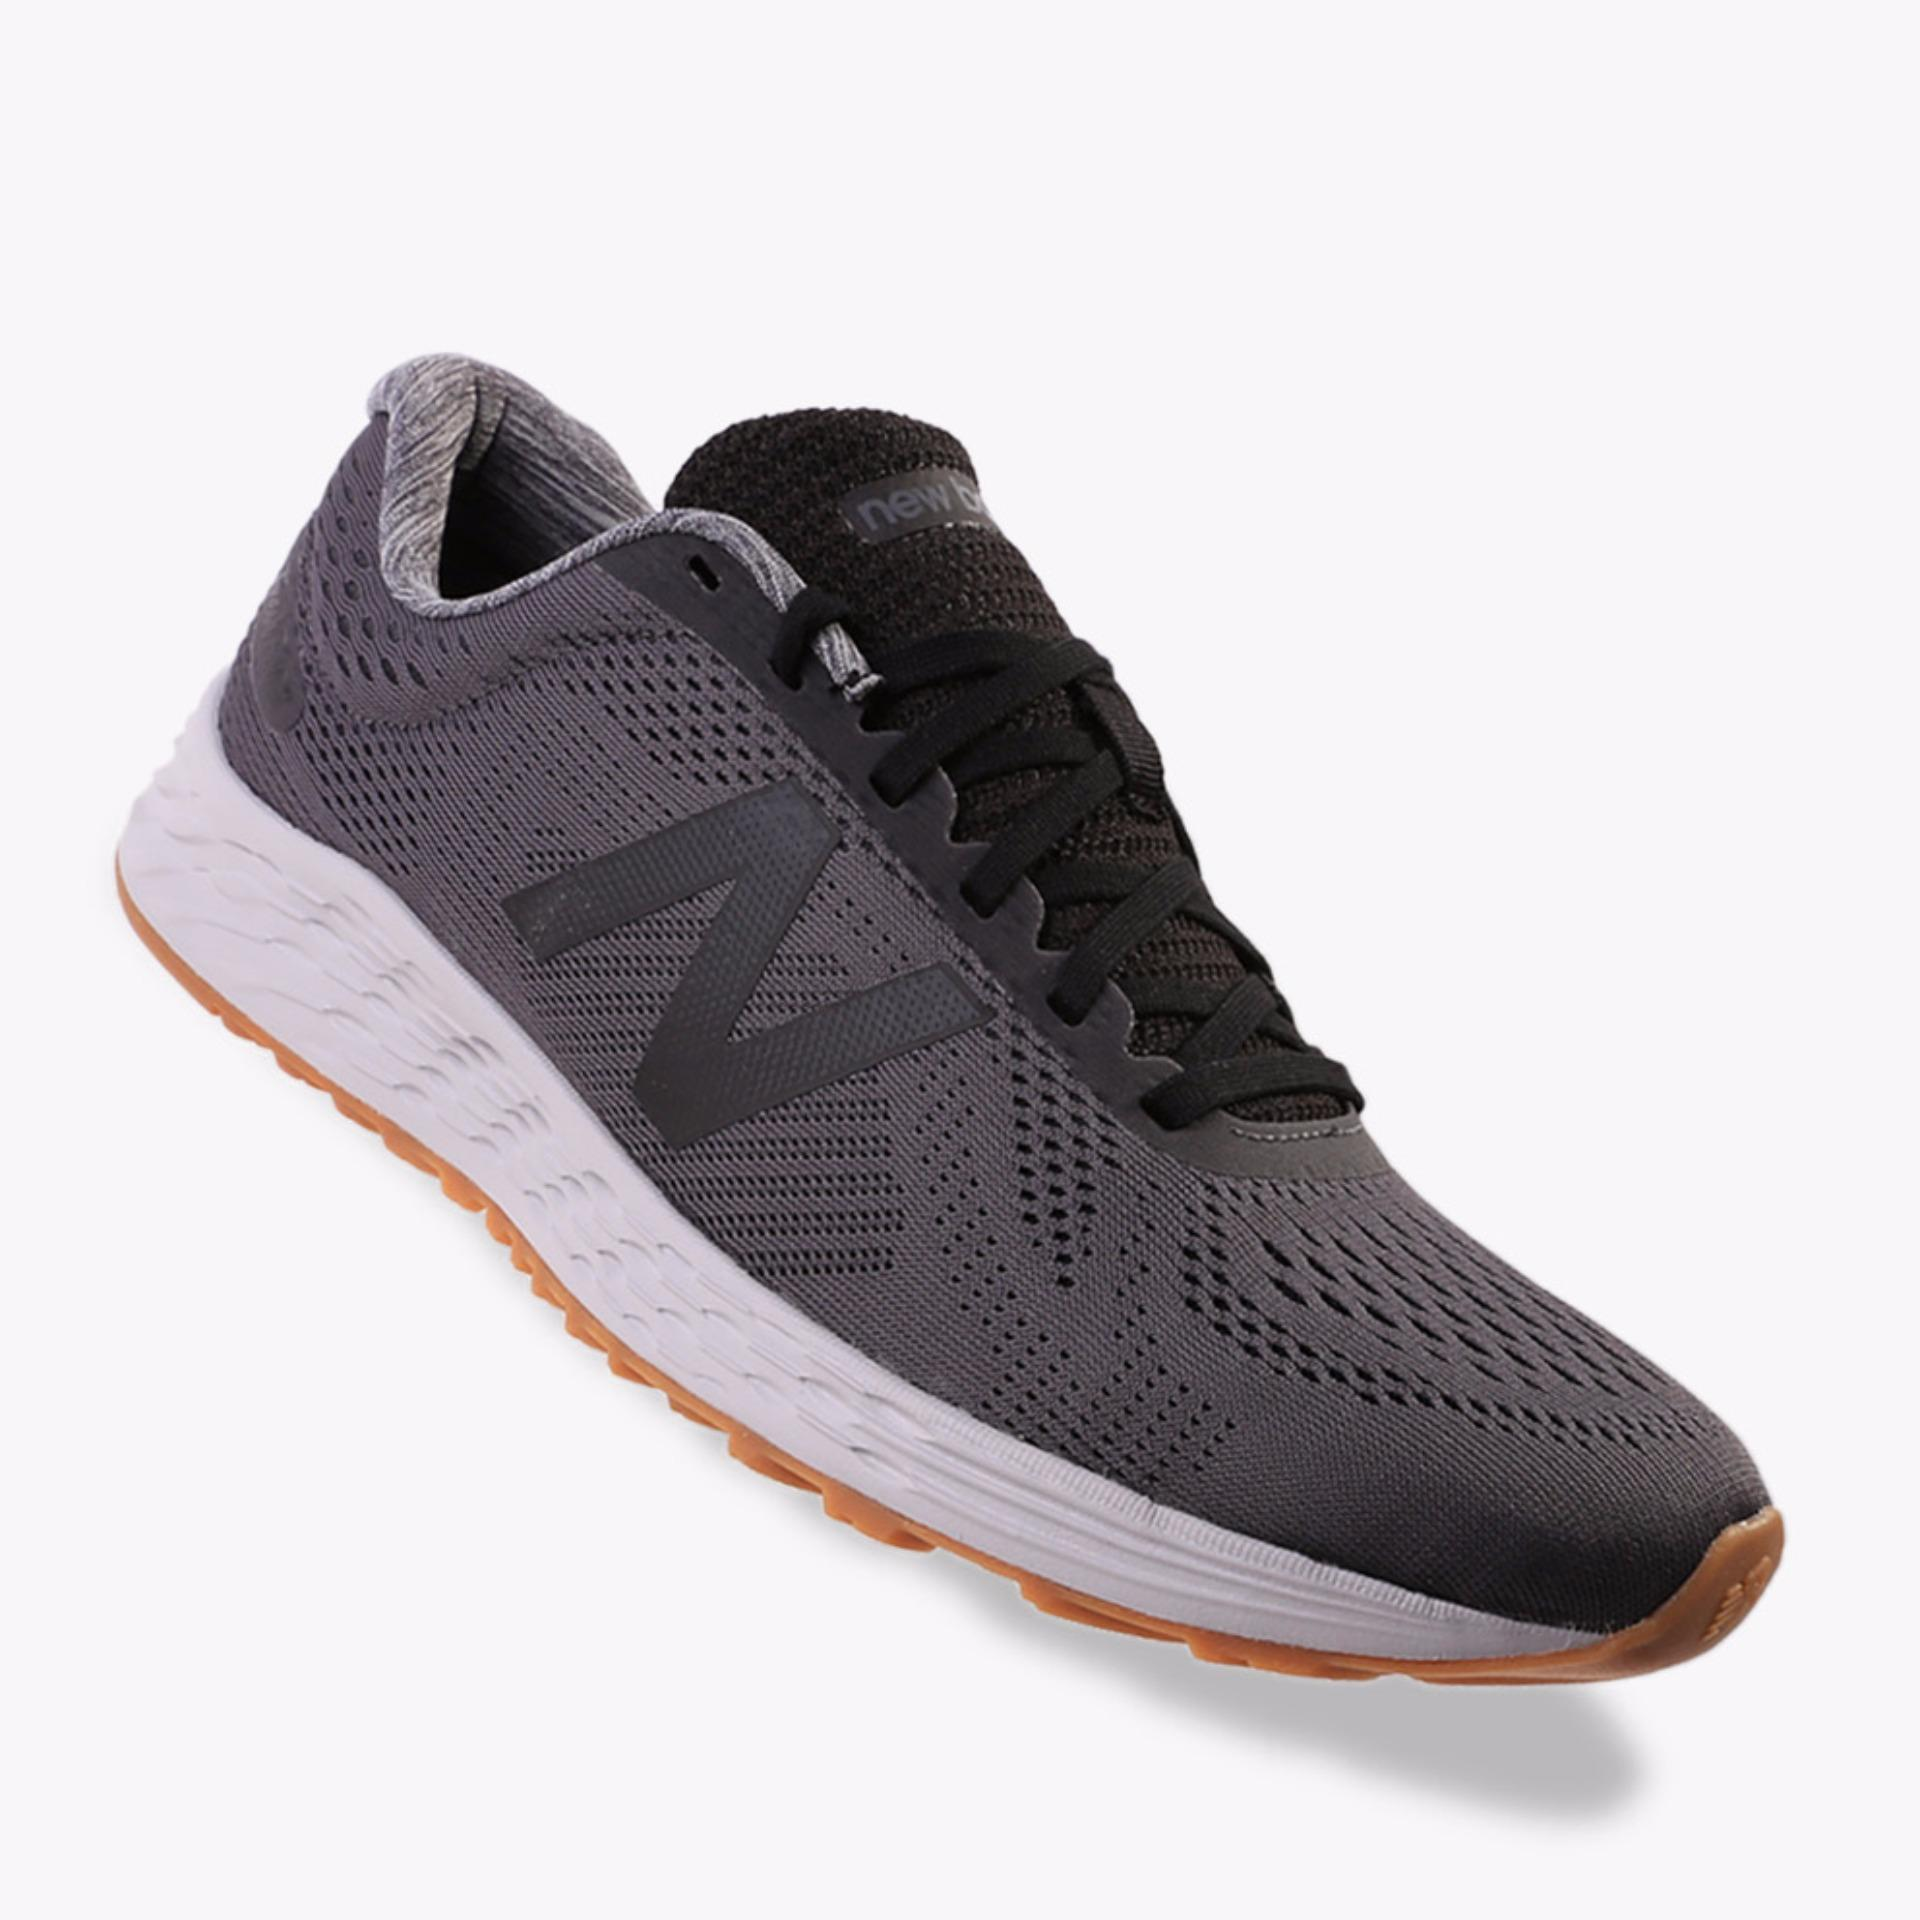 Toko New Balance Fresh Faom Arishi Men S Running Shoes Abu Abu Terlengkap Di Indonesia